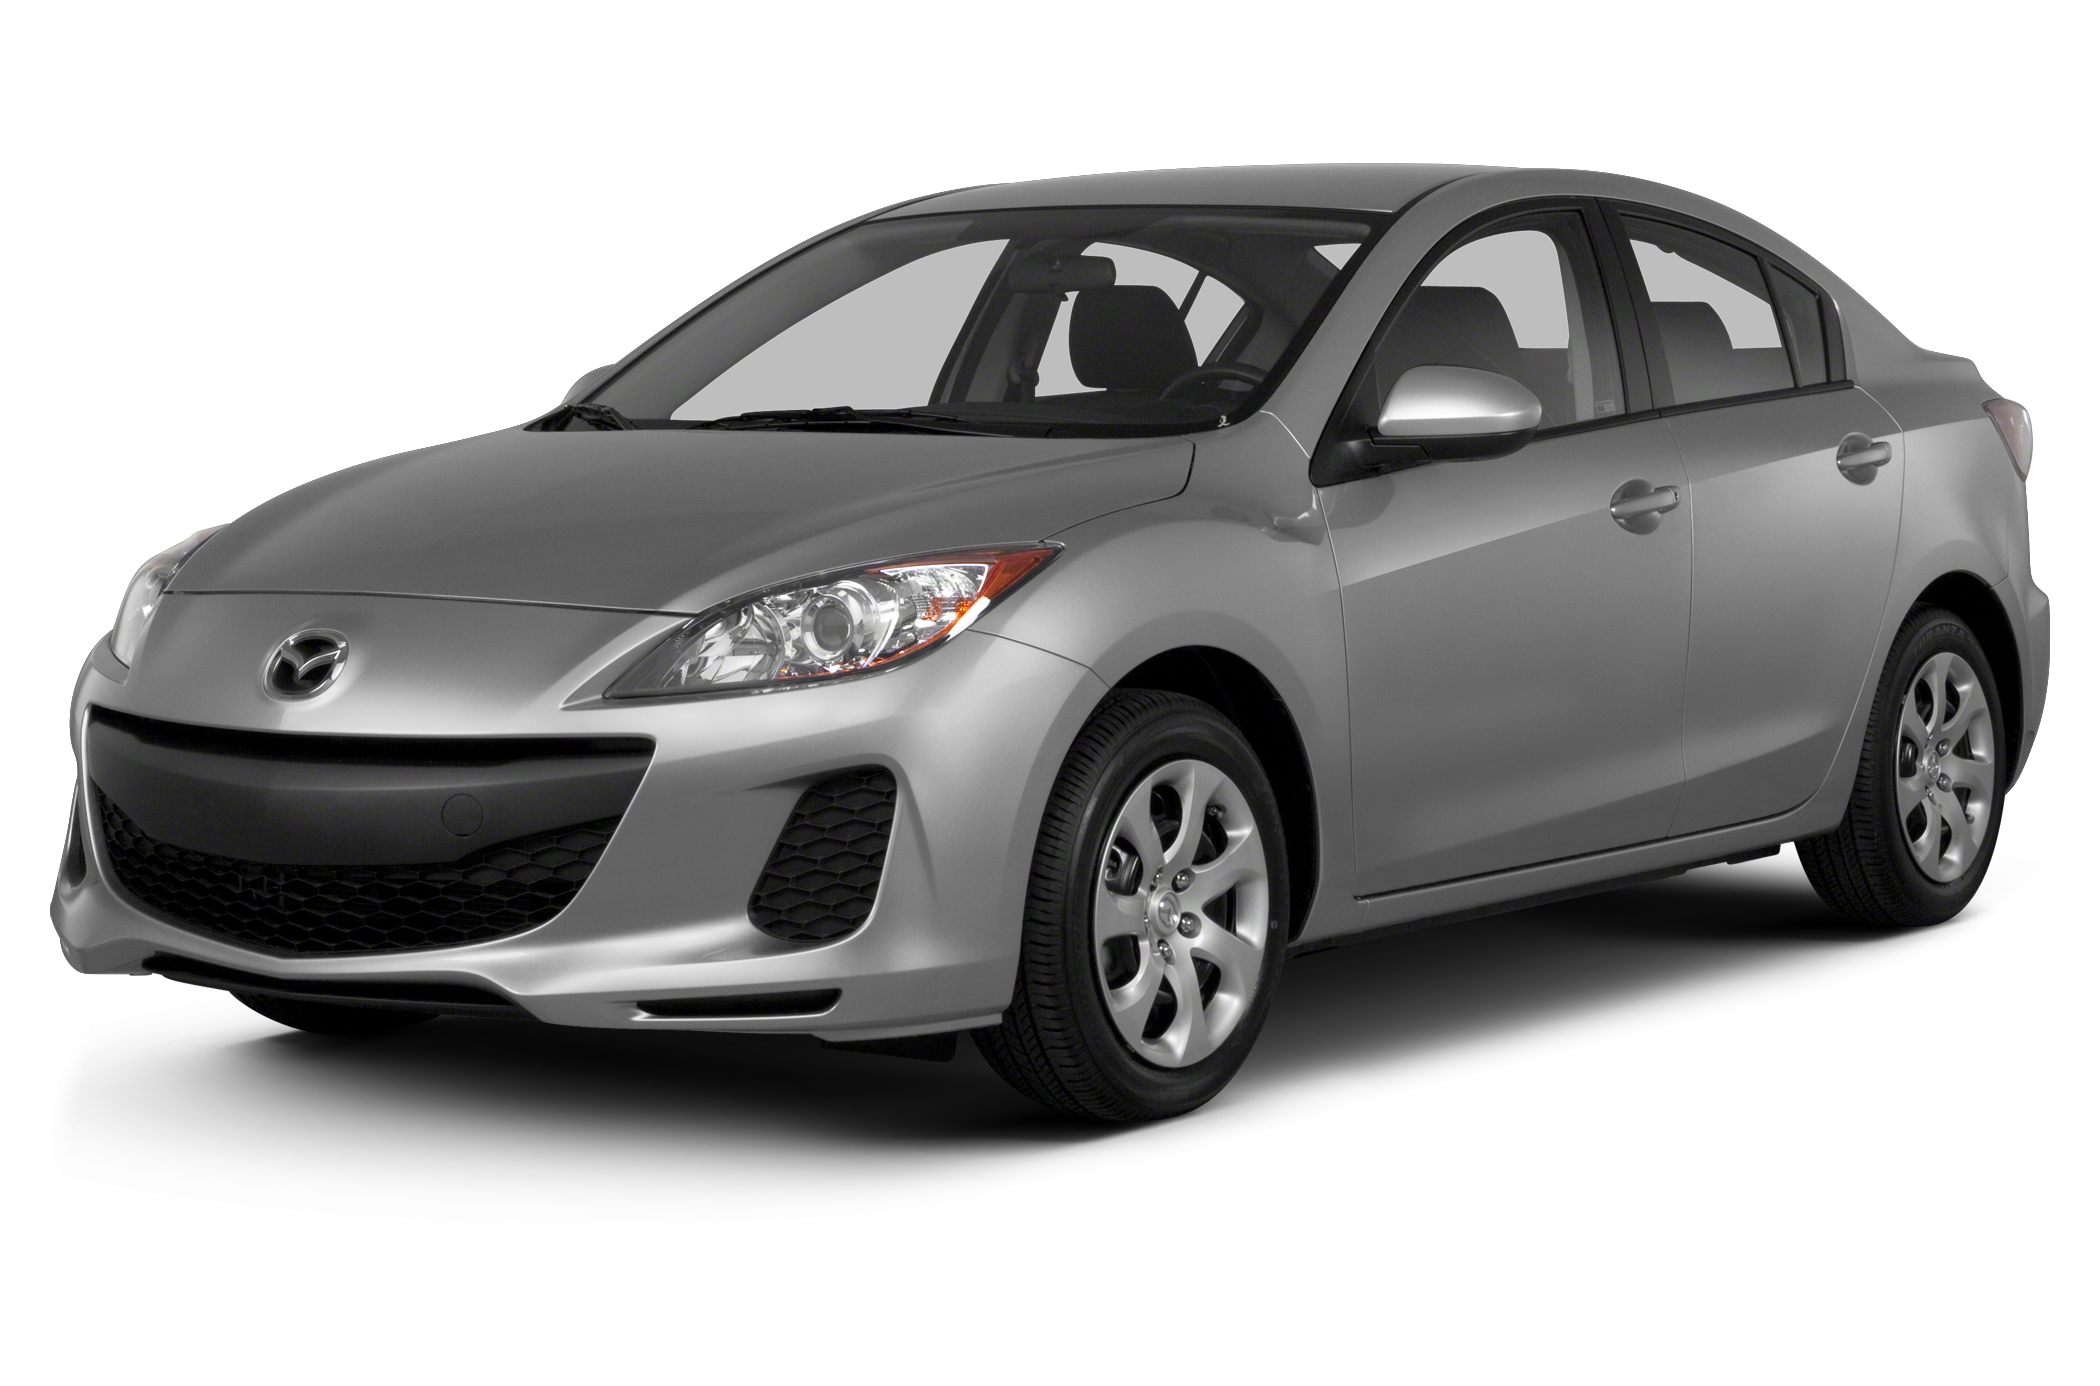 2013 Mazda Mazda3 I Touring Hatchback for sale in Baltimore for $14,690 with 24,912 miles.